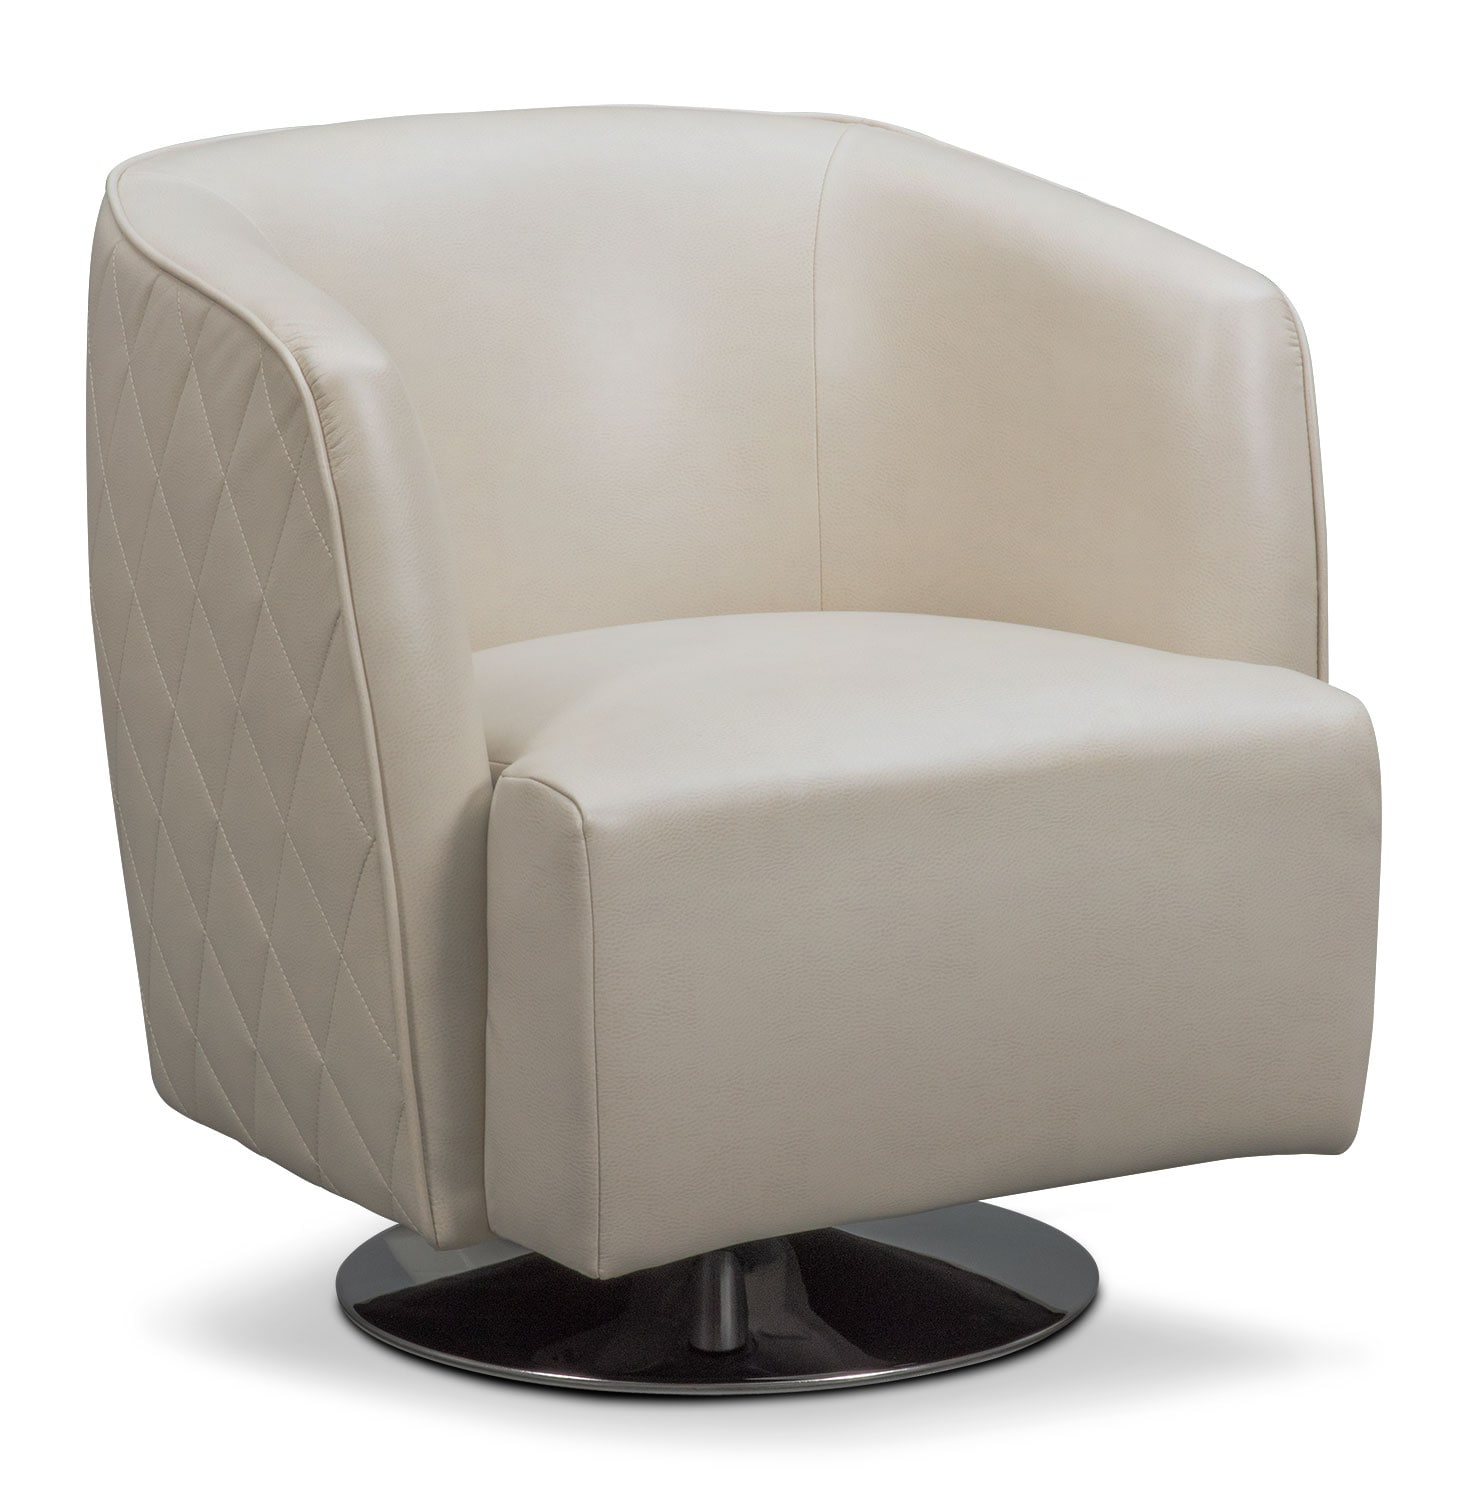 Chairs Amp Chaises Living Room Seating Value City Furniture